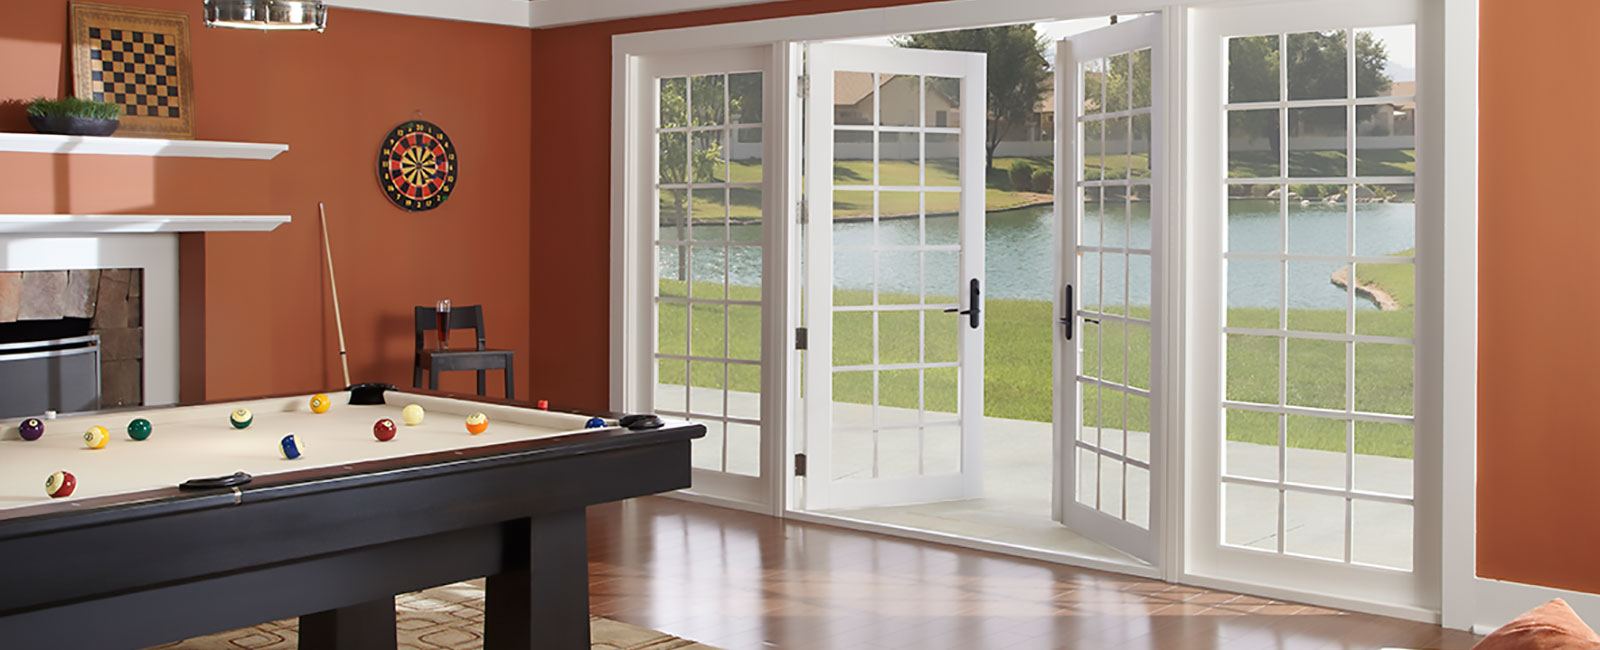 Newman Impact Resistant Windows And Doors In West Palm. Child Development Degree Policies On Abortion. Nci Cancer Centers List Is It School Tomorrow. Payroll Companies In Ma Submit Press Releases. Property Investment Loan Government Bonds Buy